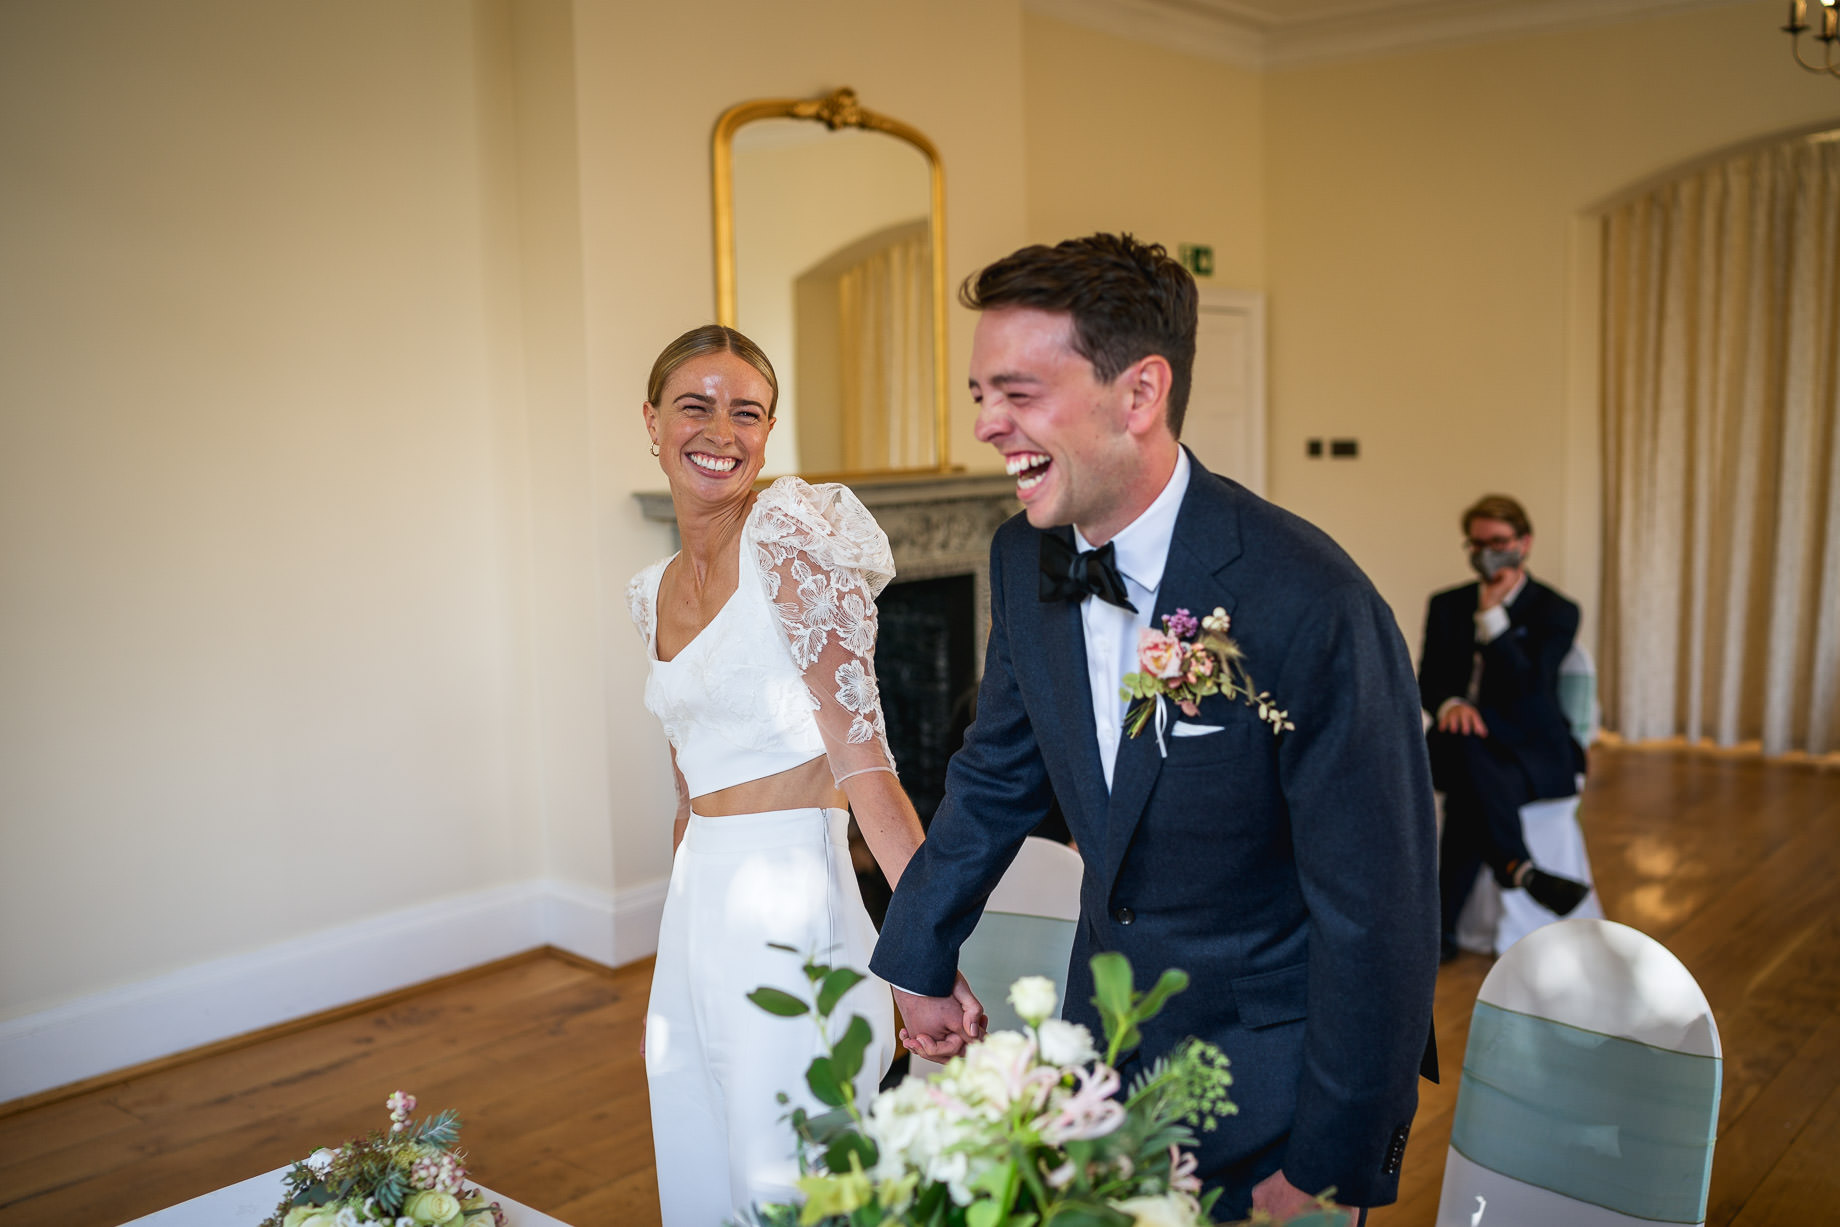 Micro wedding photography – Emily + Cam at Pembroke Lodge